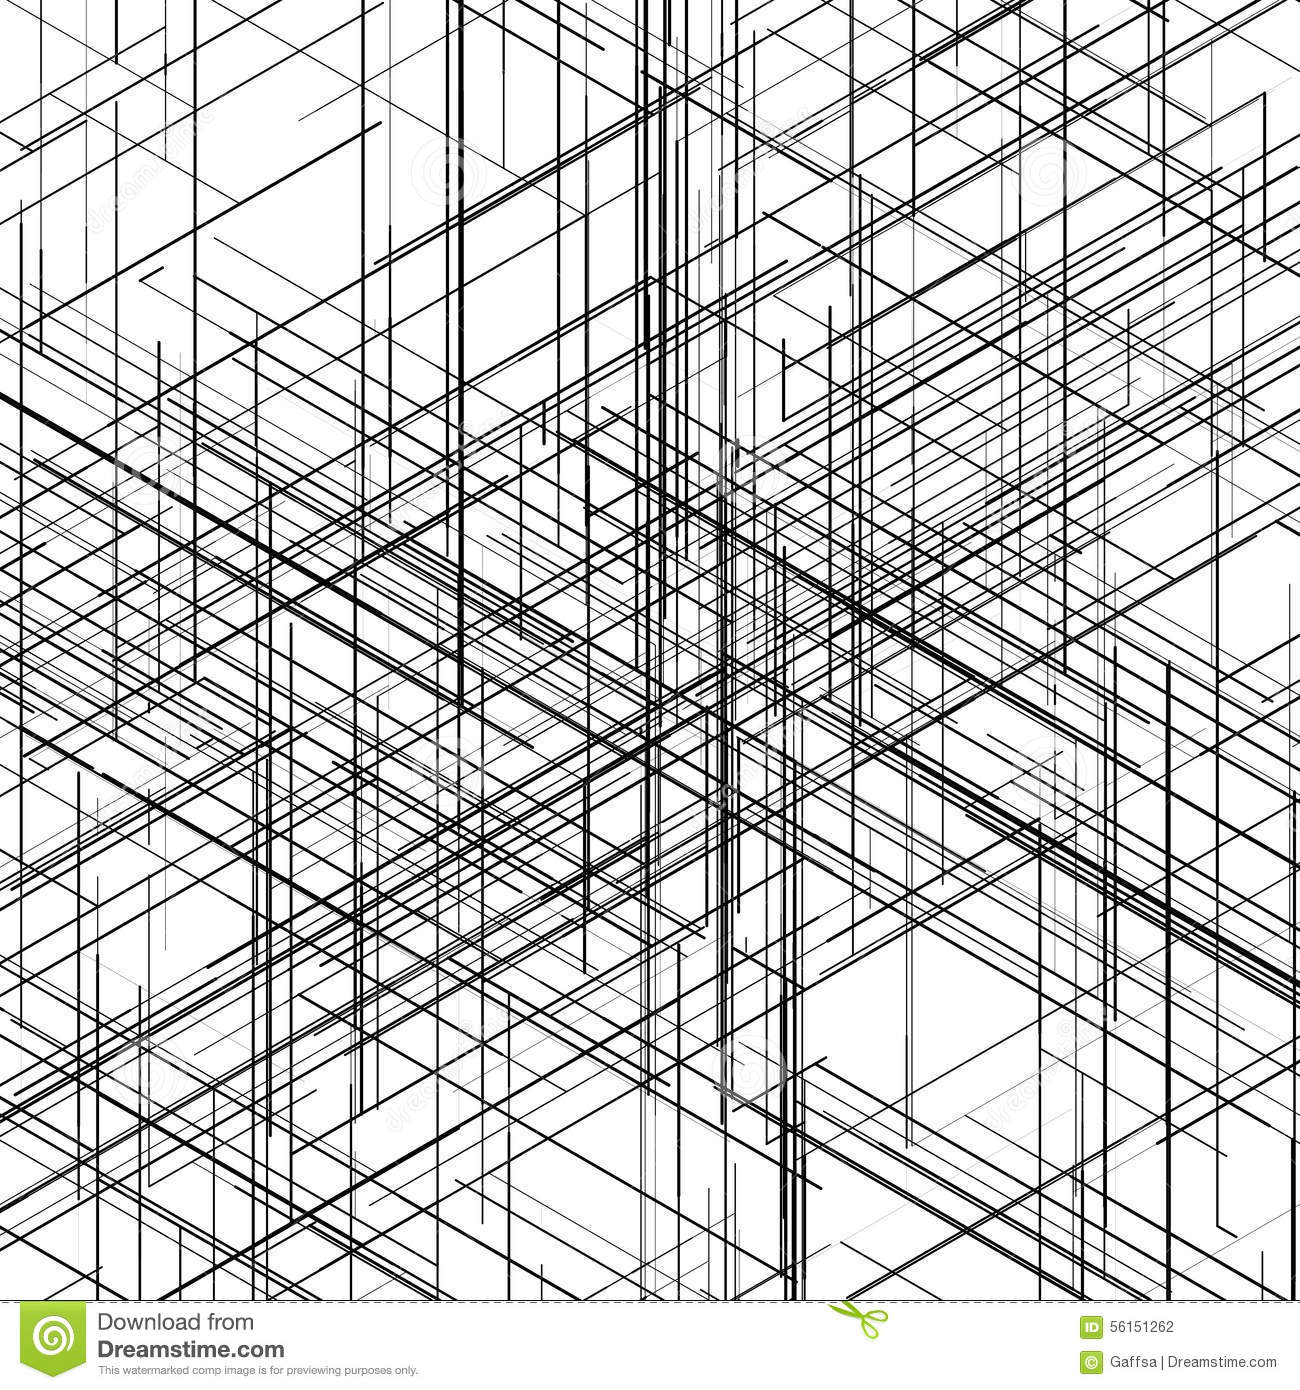 Abstract isometric computer generated 3d blueprint stock abstract isometric hexagonal computer generated 3d blueprint visualization lines background vector illustration for break through in technology malvernweather Gallery